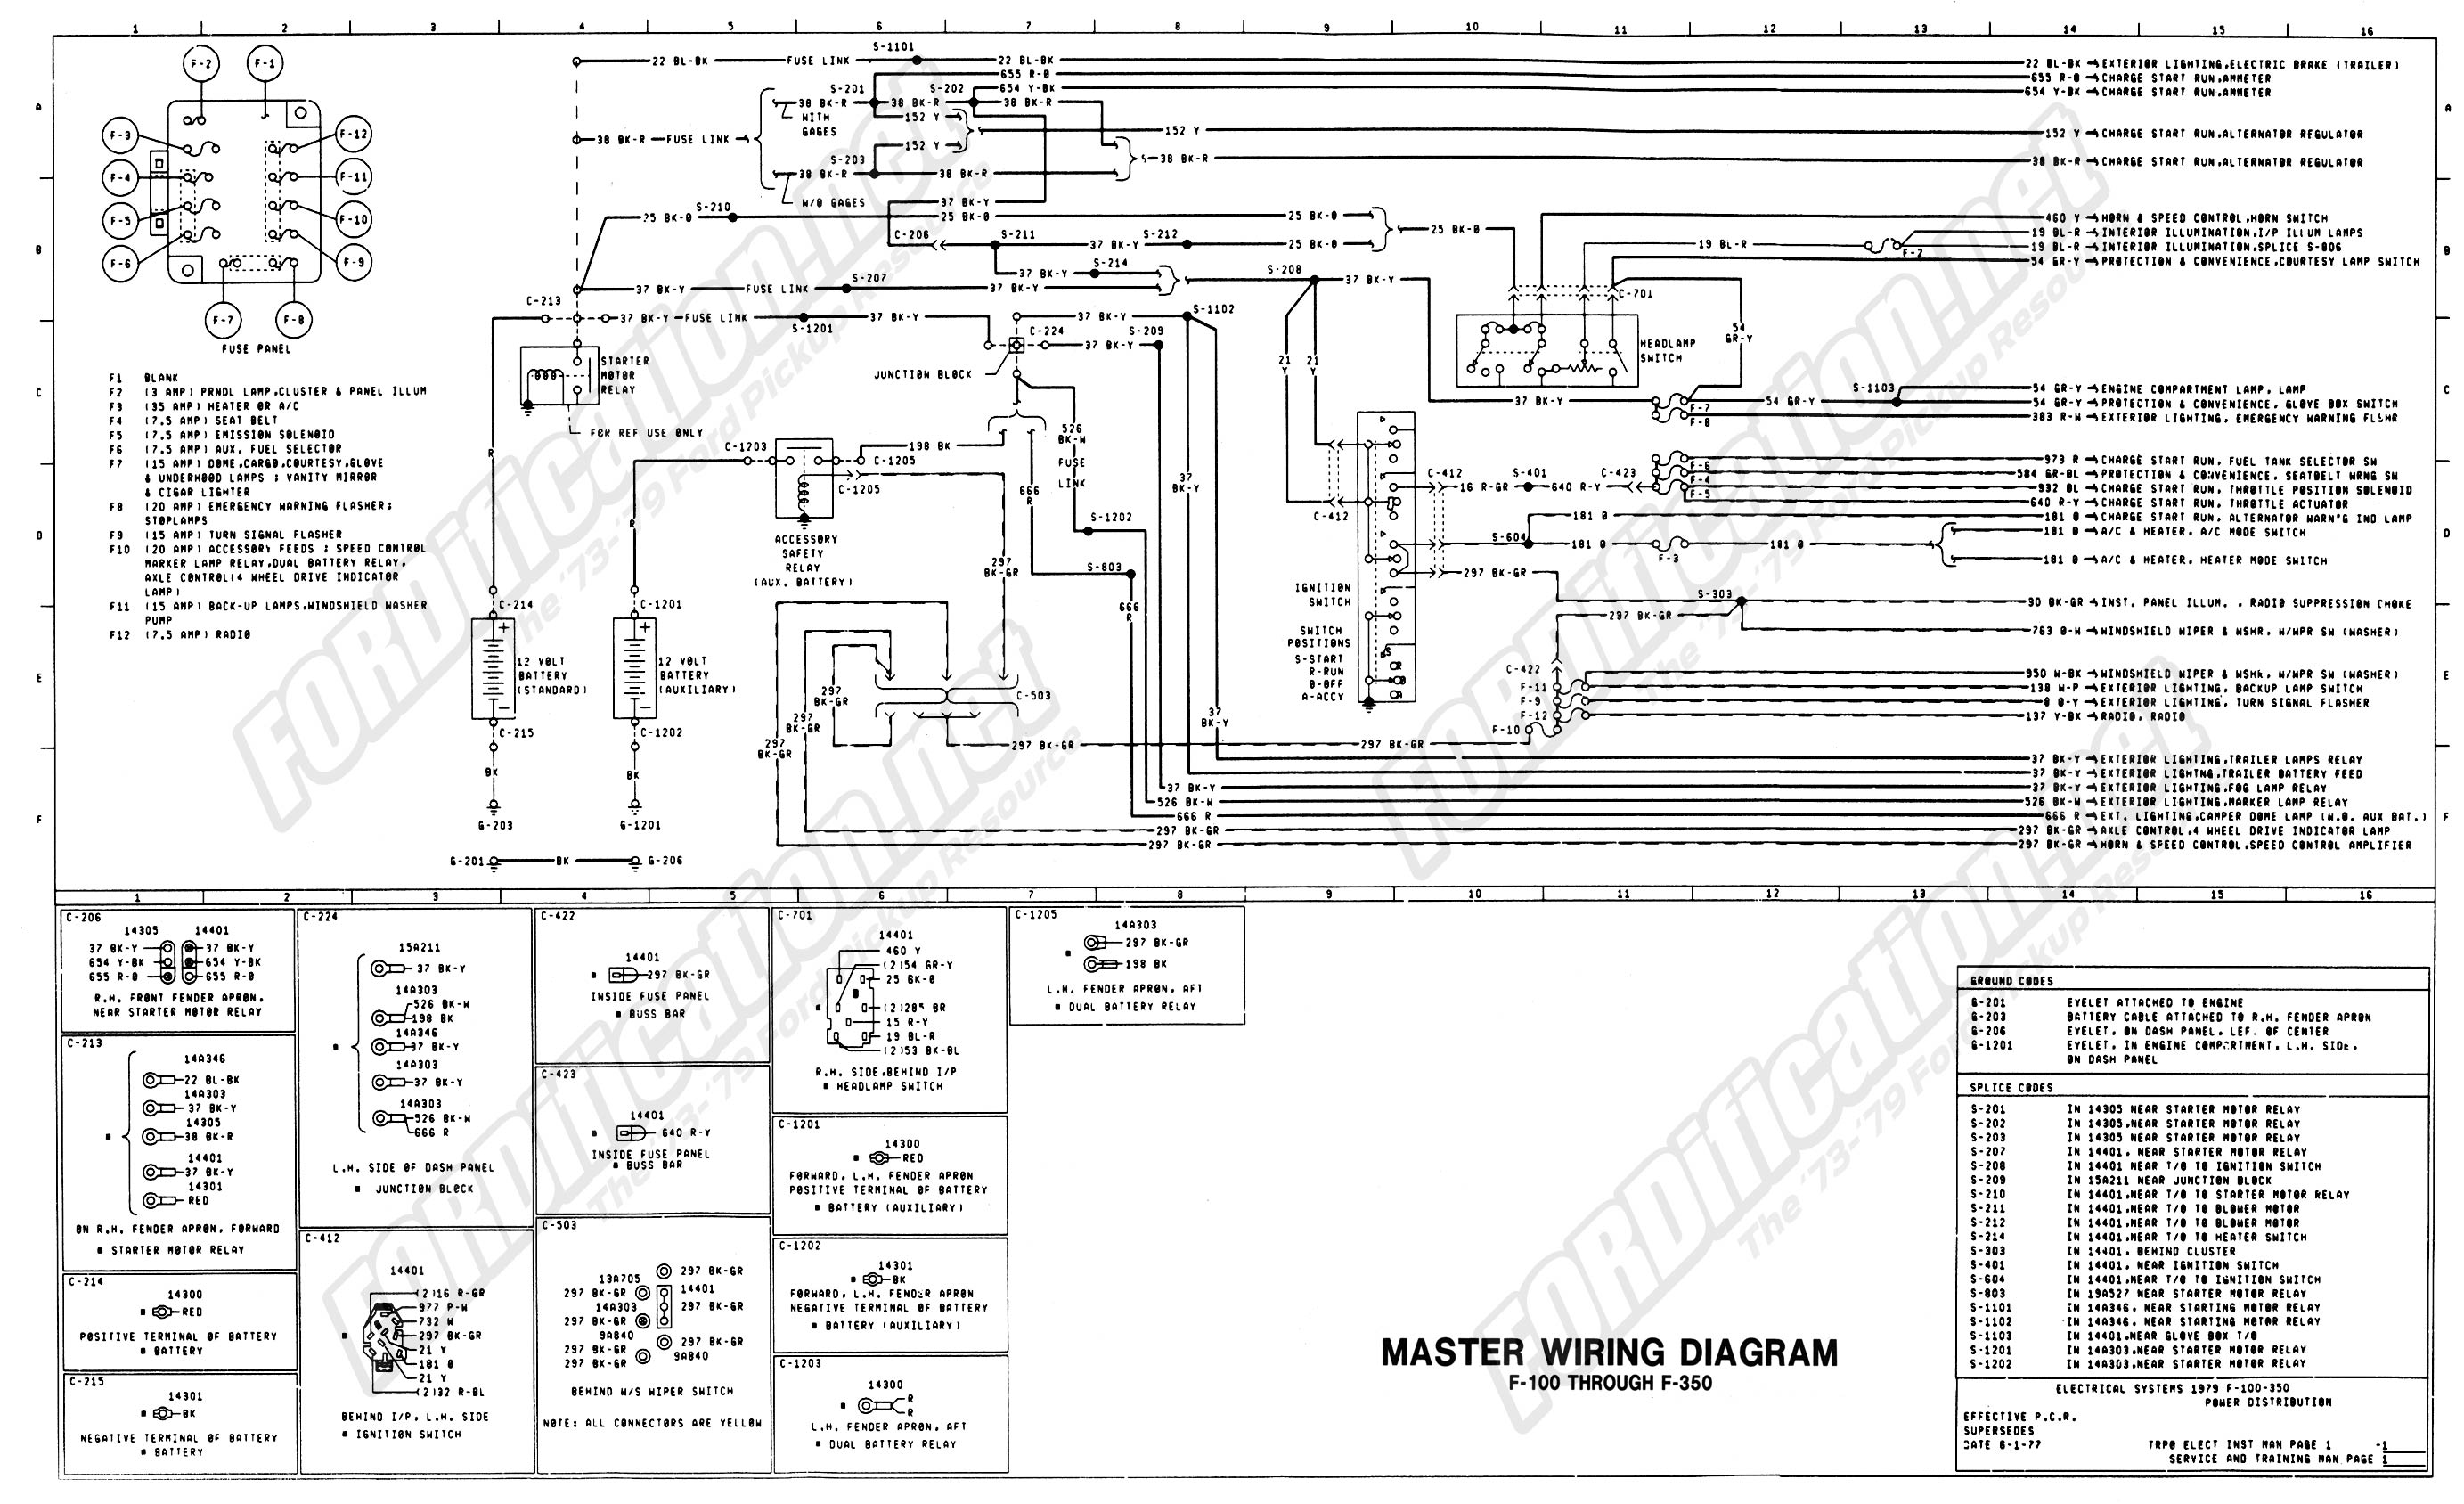 wiring_79master_1of9 1973 1979 ford truck wiring diagrams & schematics fordification net 1979 ford bronco wiring diagram at mifinder.co